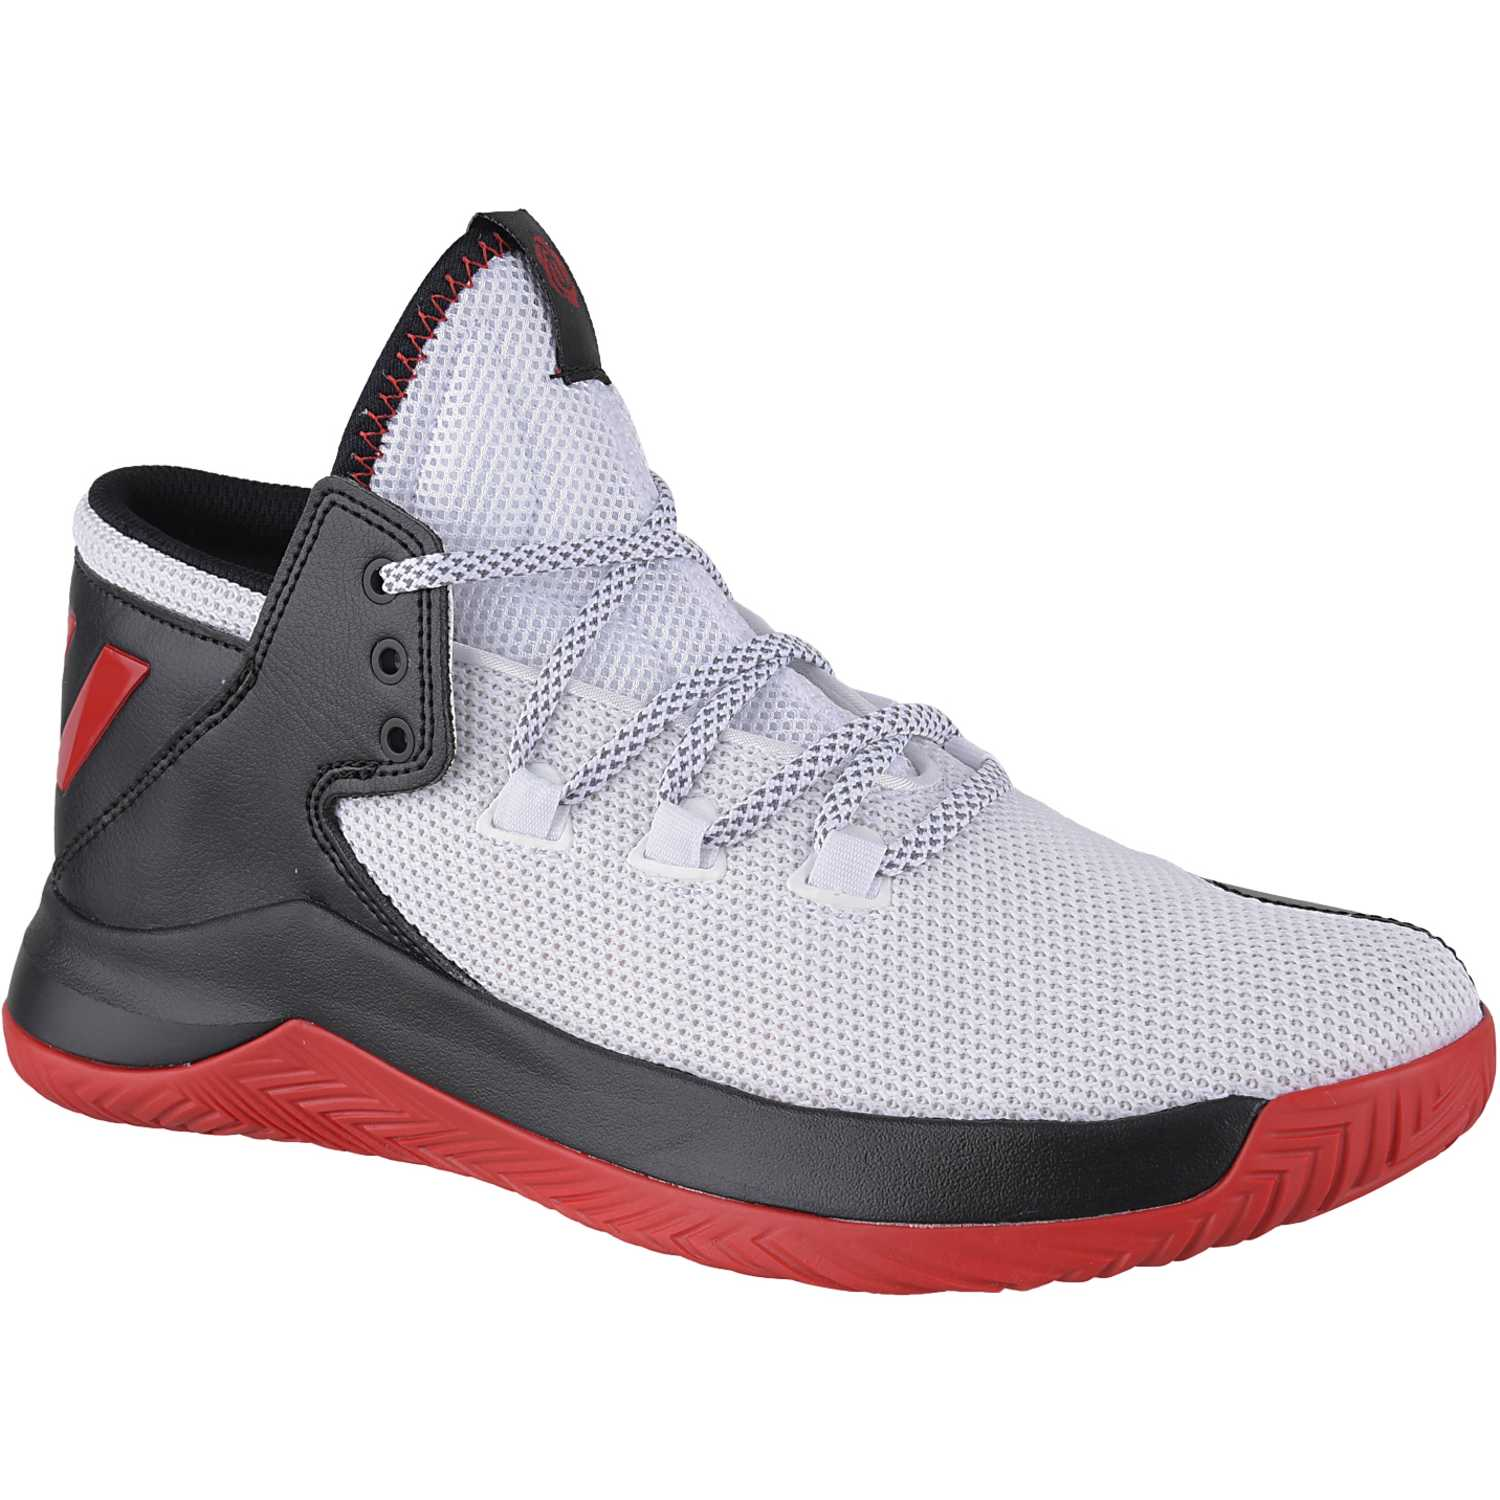 new product b2131 153b4 Zapatilla de Hombre Adidas Blanco  negro d rose menace 2